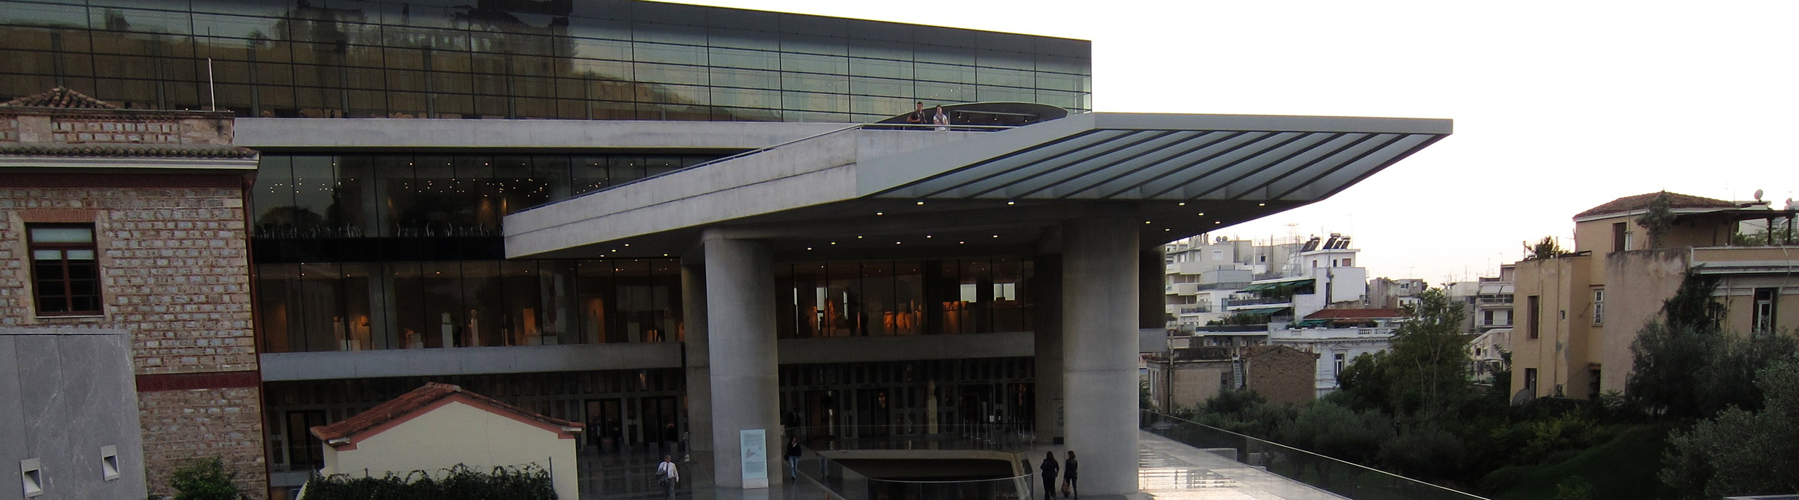 Athens – Hostels close to New Acropolis Museum. Maps for Athens, Photos and Reviews for each hostel in Athens.